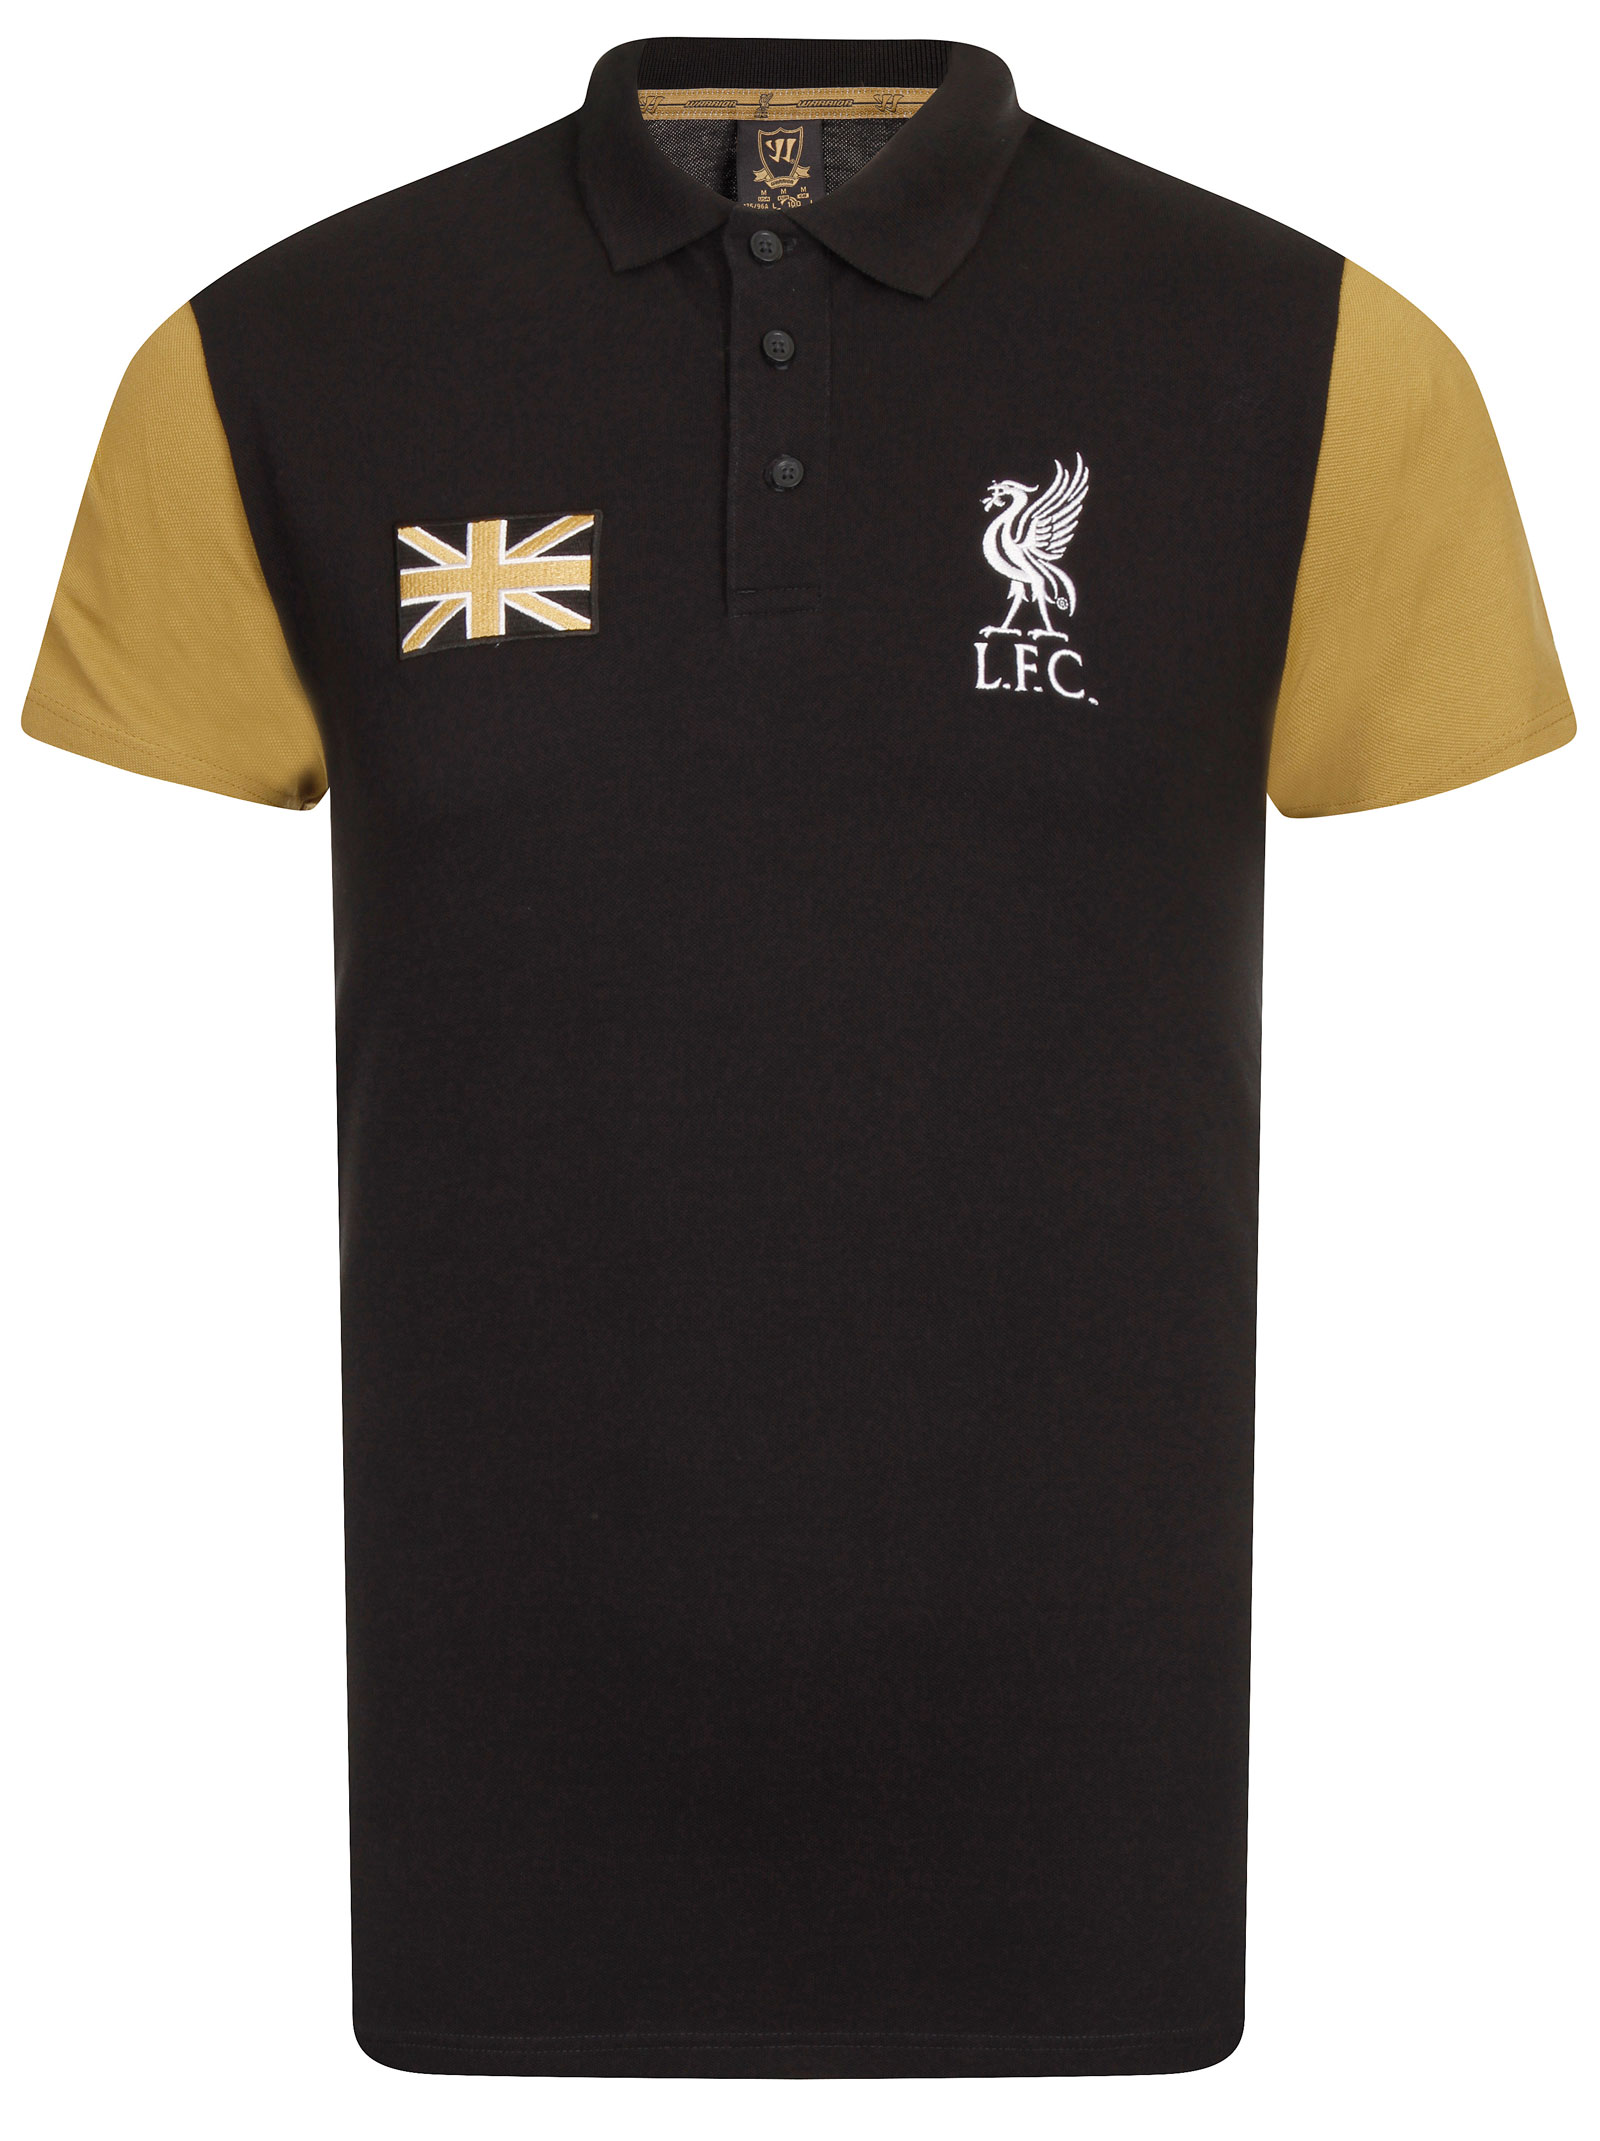 warrior mens official 2014 15 liverpool lfc union black polo shirt all sizes ebay. Black Bedroom Furniture Sets. Home Design Ideas